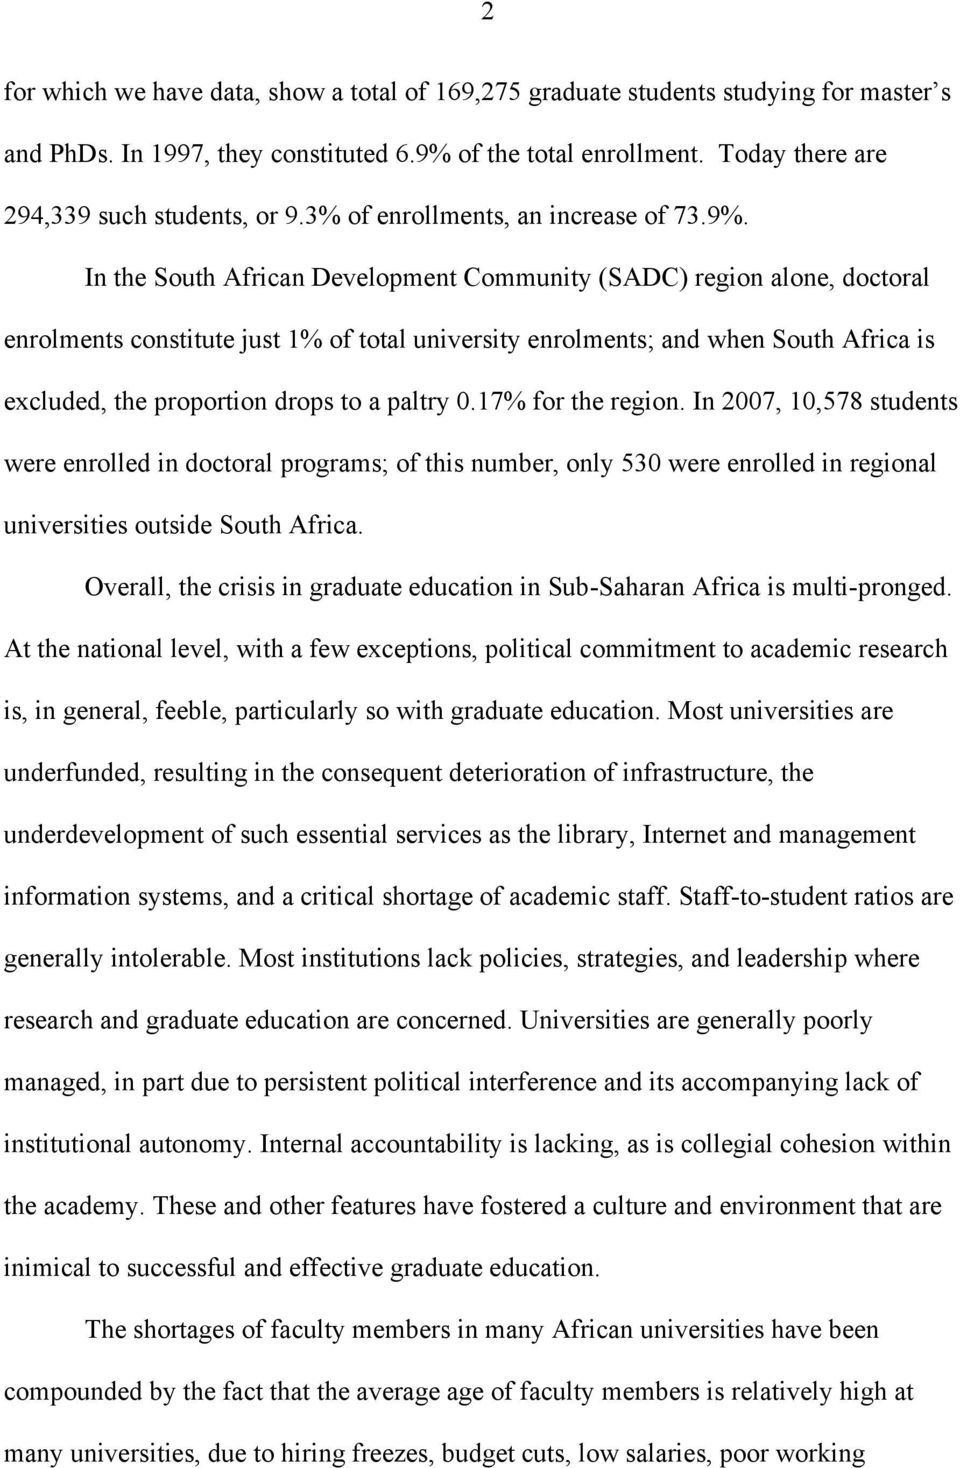 In the South African Development Community (SADC) region alone, doctoral enrolments constitute just 1% of total university enrolments; and when South Africa is excluded, the proportion drops to a